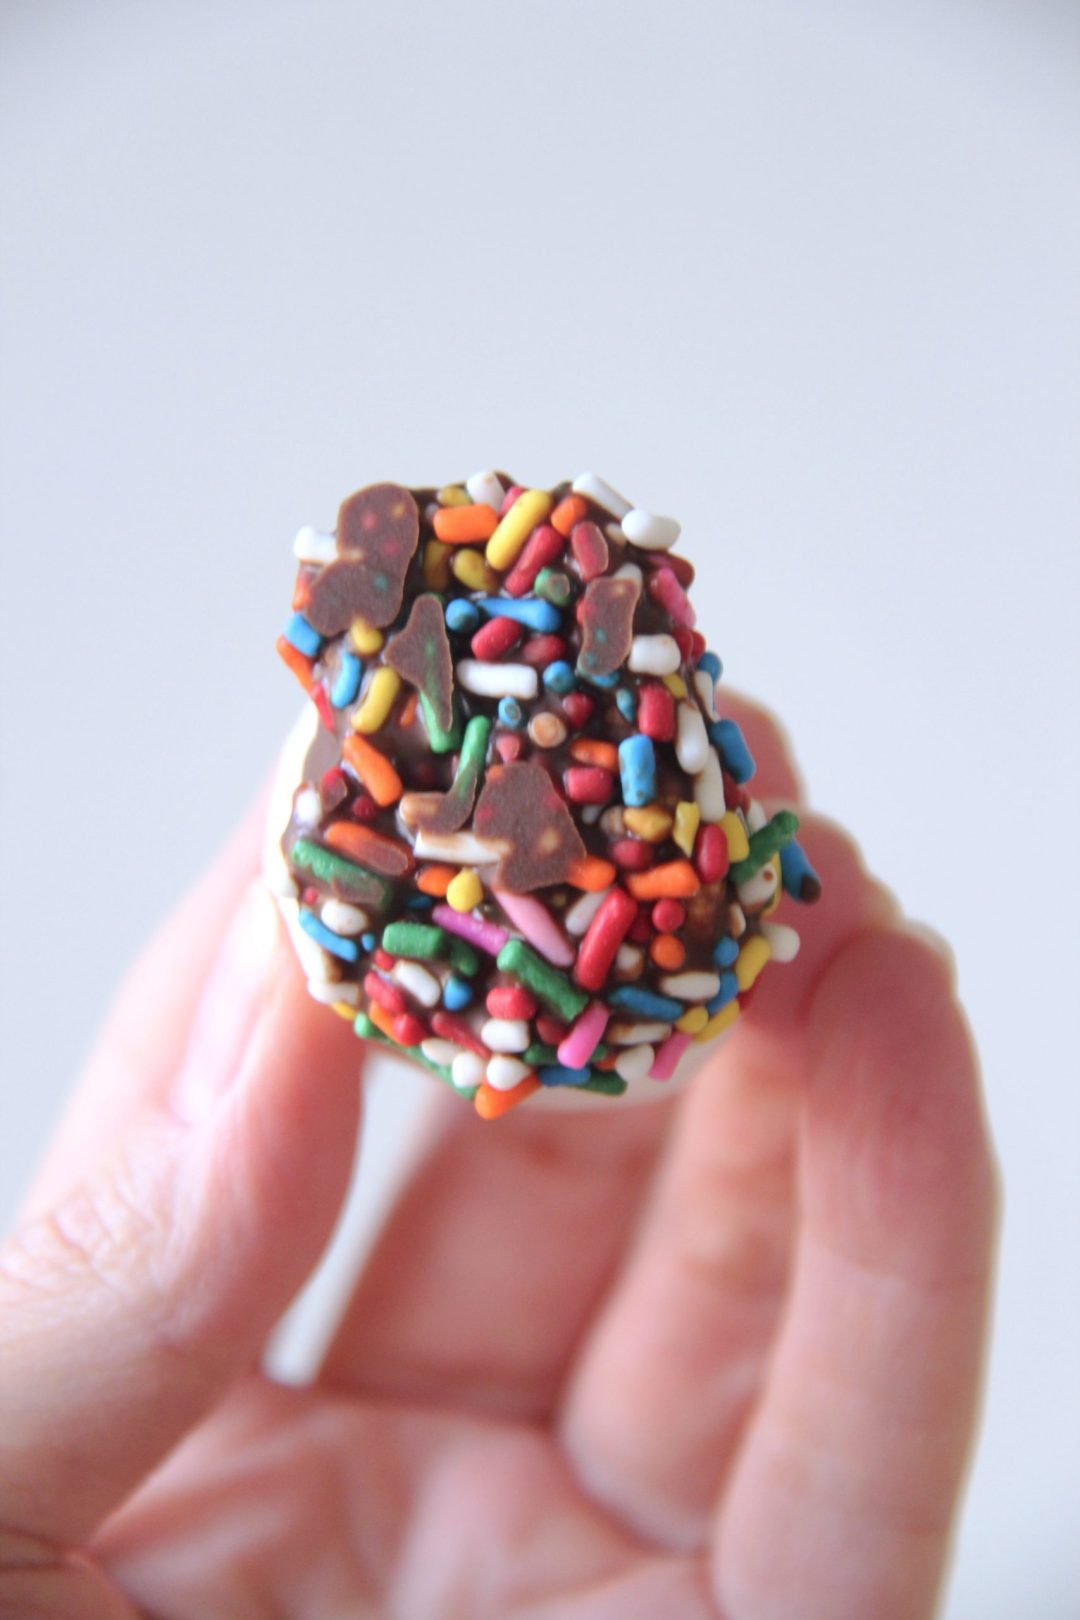 Want a kid-approved treat that's as easy as it is delicious? Try your hand at chocolate covered marshmallows with rainbow sprinkles. | madewithlev.com #cookingwithkids #desserts #sweettreats #chocolate #marshmallows #dessertrecipes #easydesserts